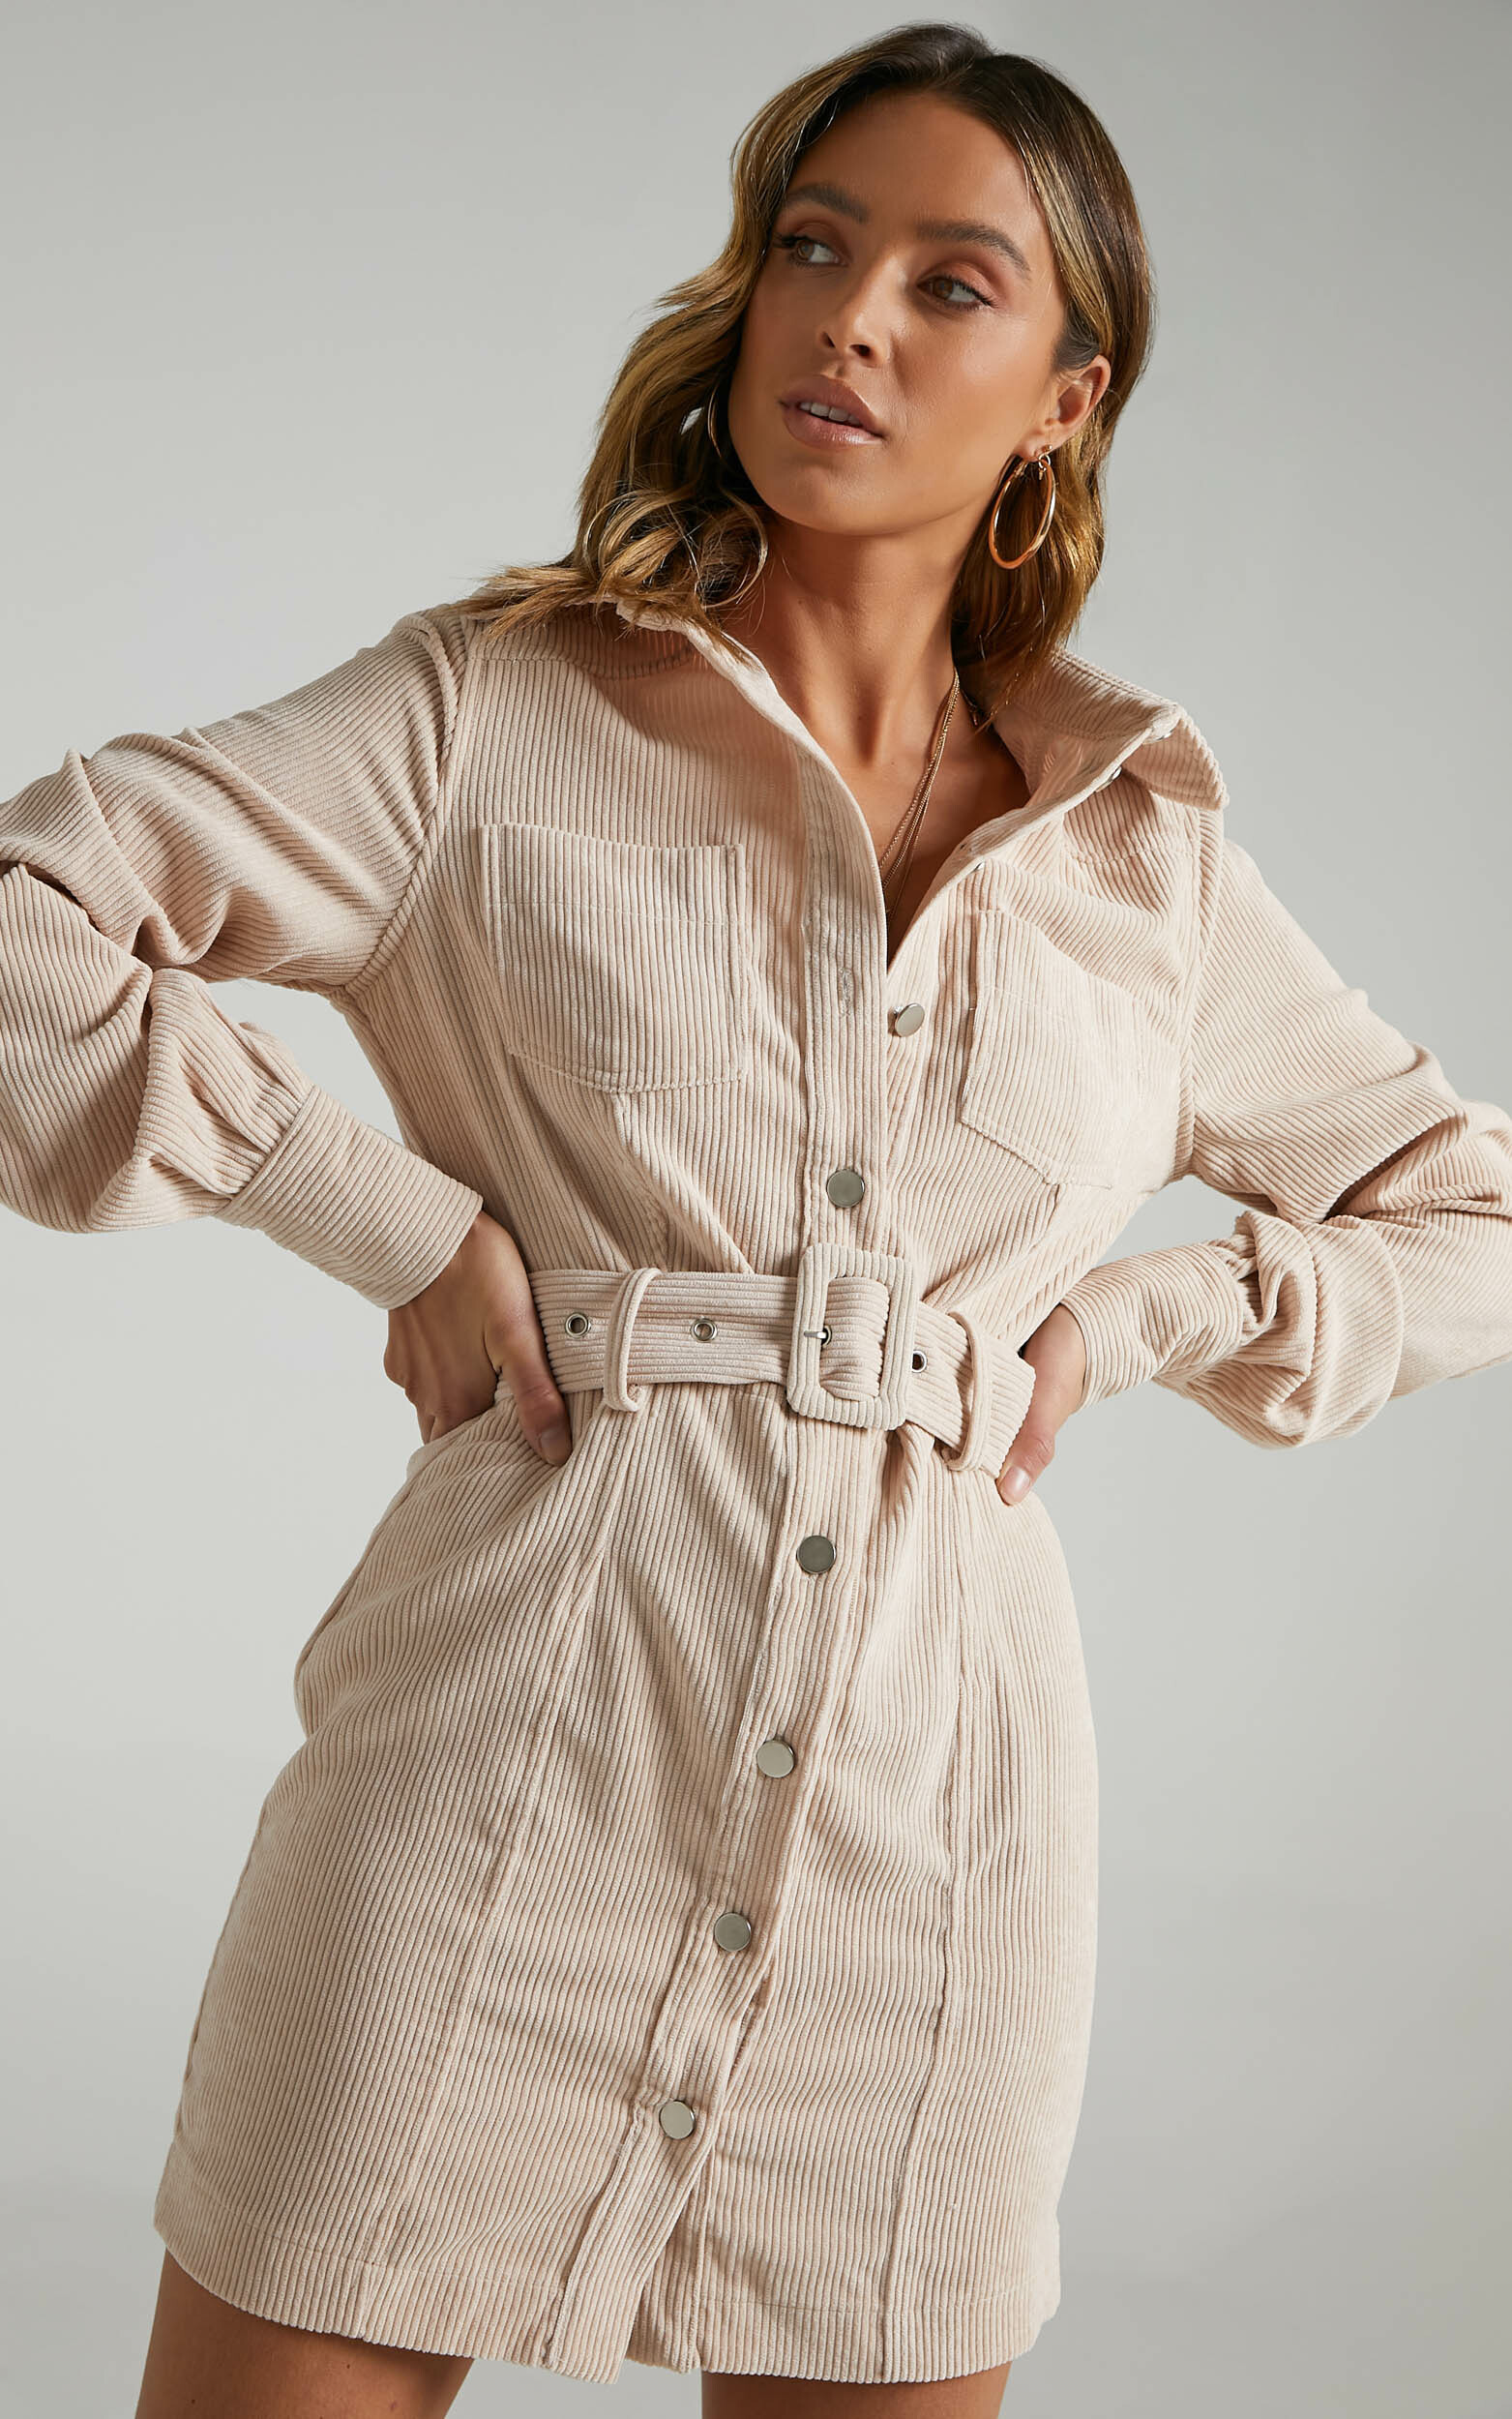 Lida Mini Long Sleeve Belted Corduroy Dress in Cream - 06, CRE3, hi-res image number null